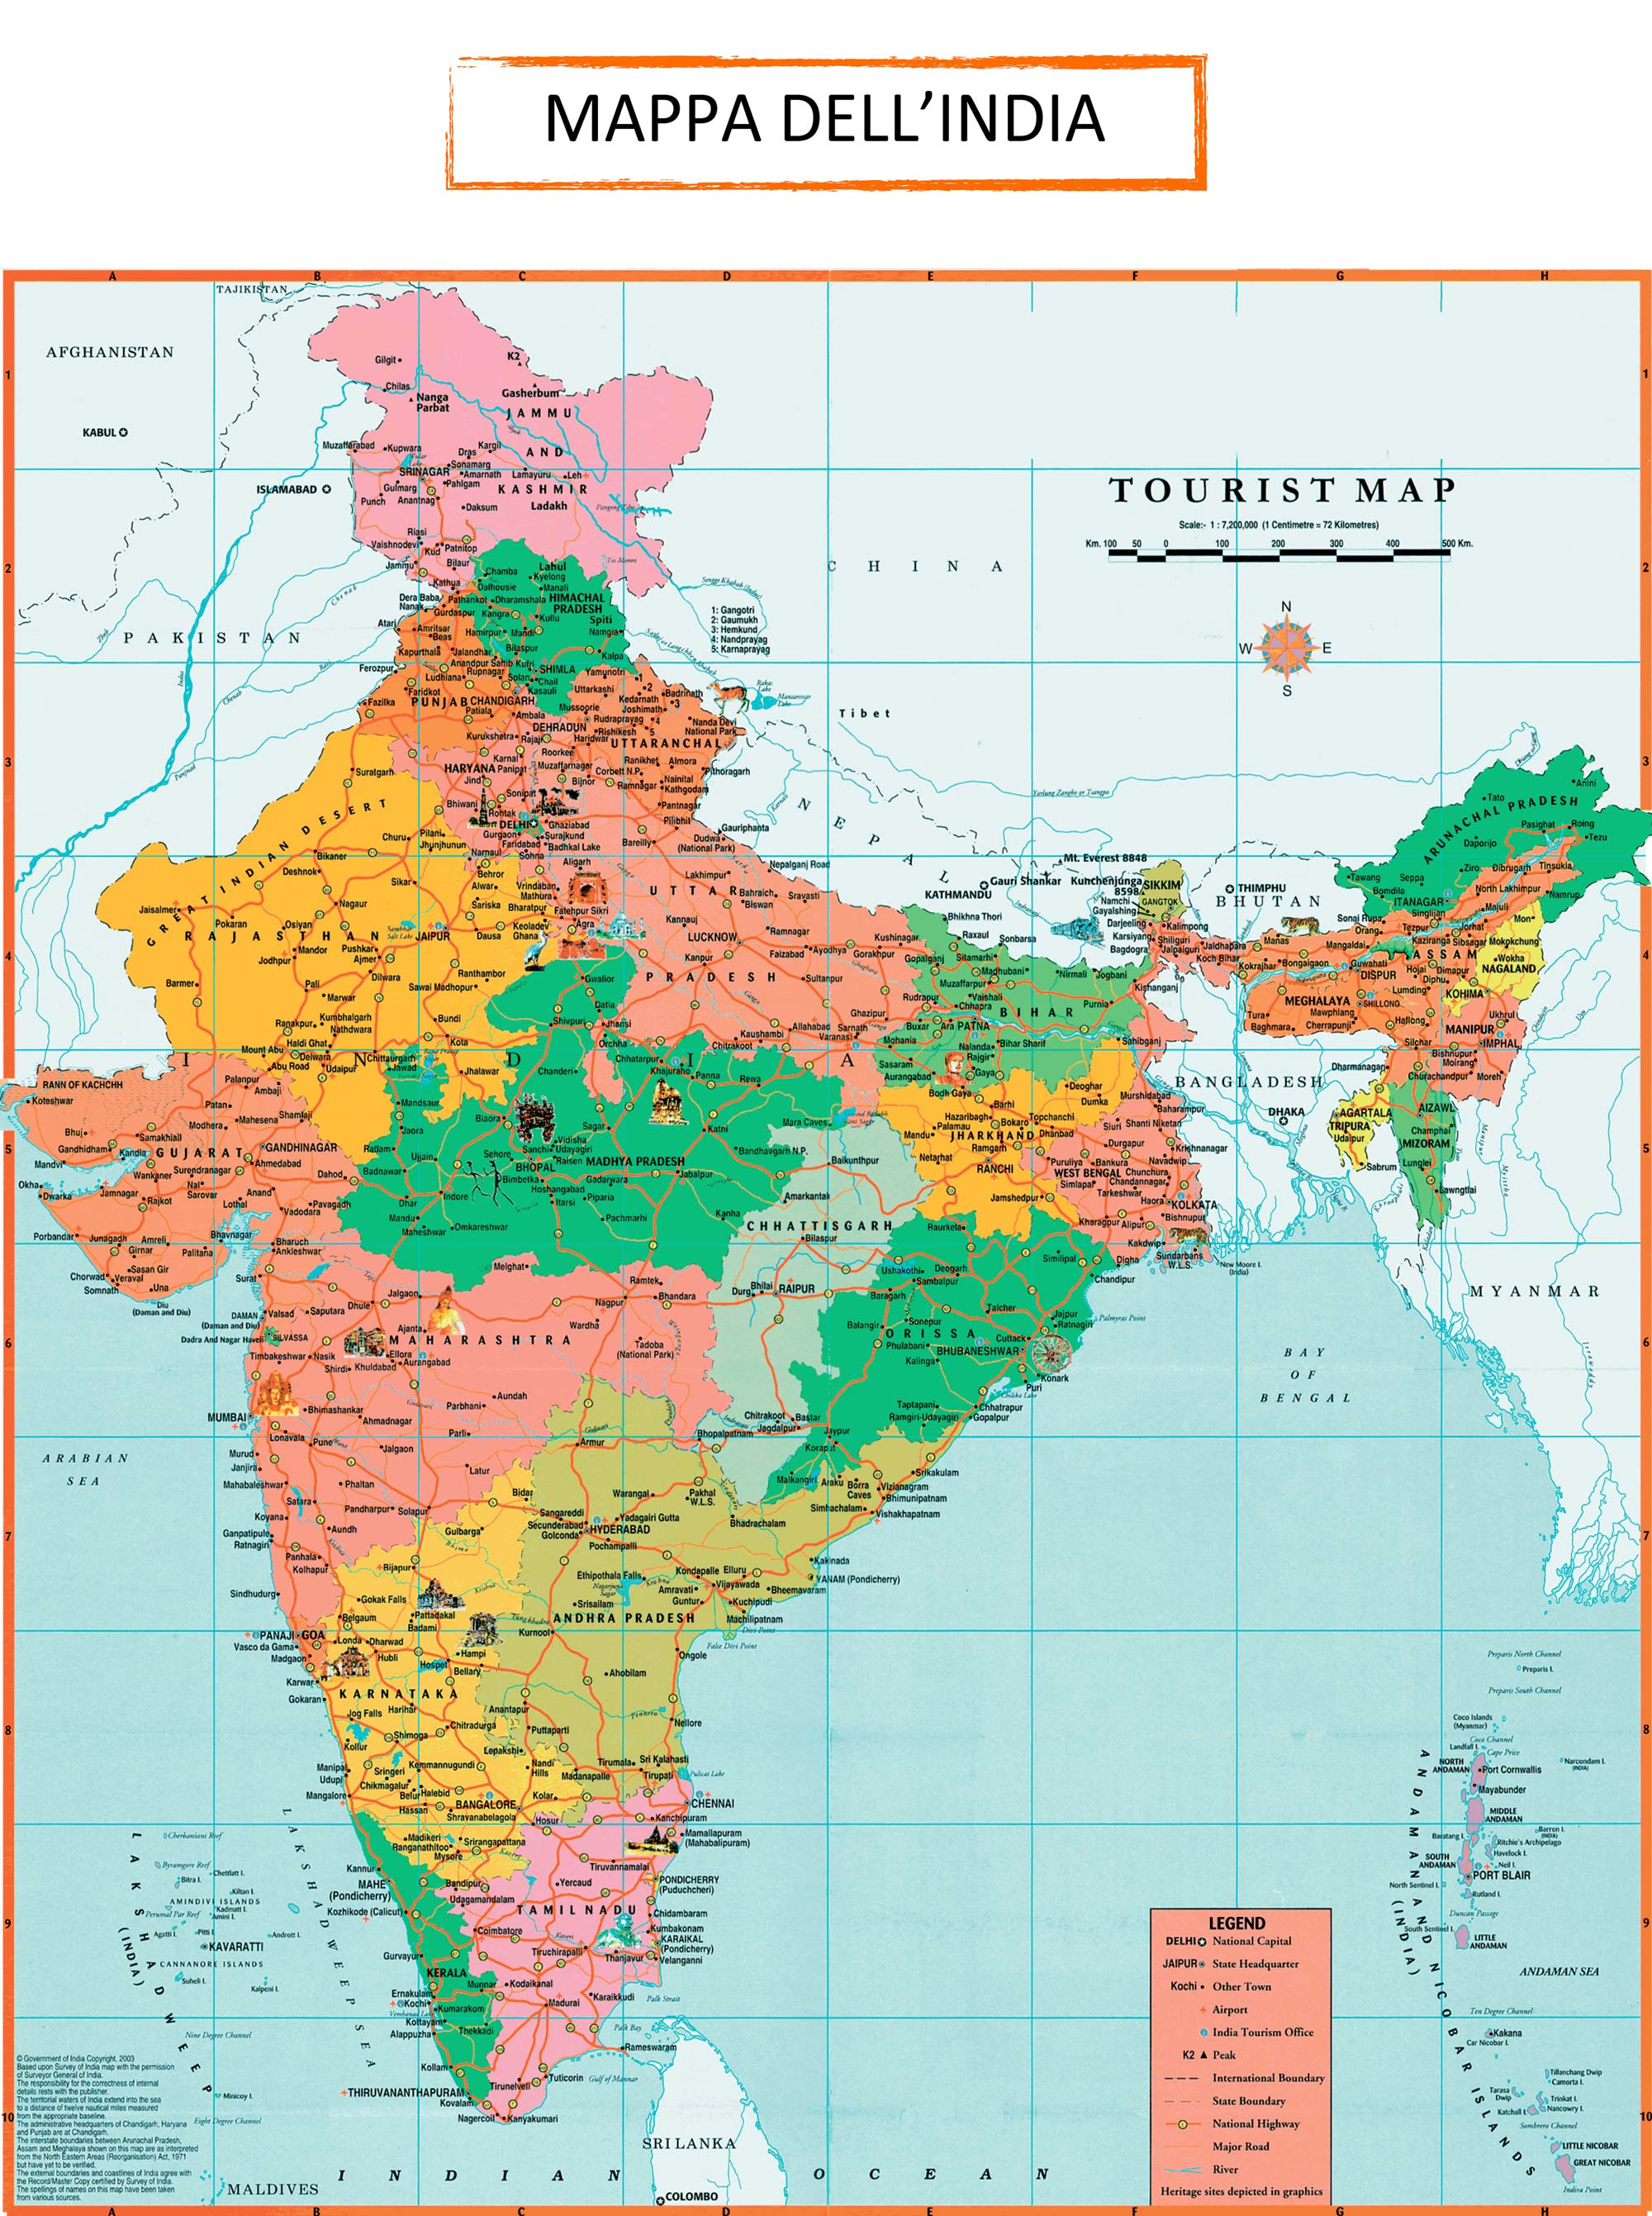 Cartina India Nord.India Cartina Politica Mappa Dell India Mappa India